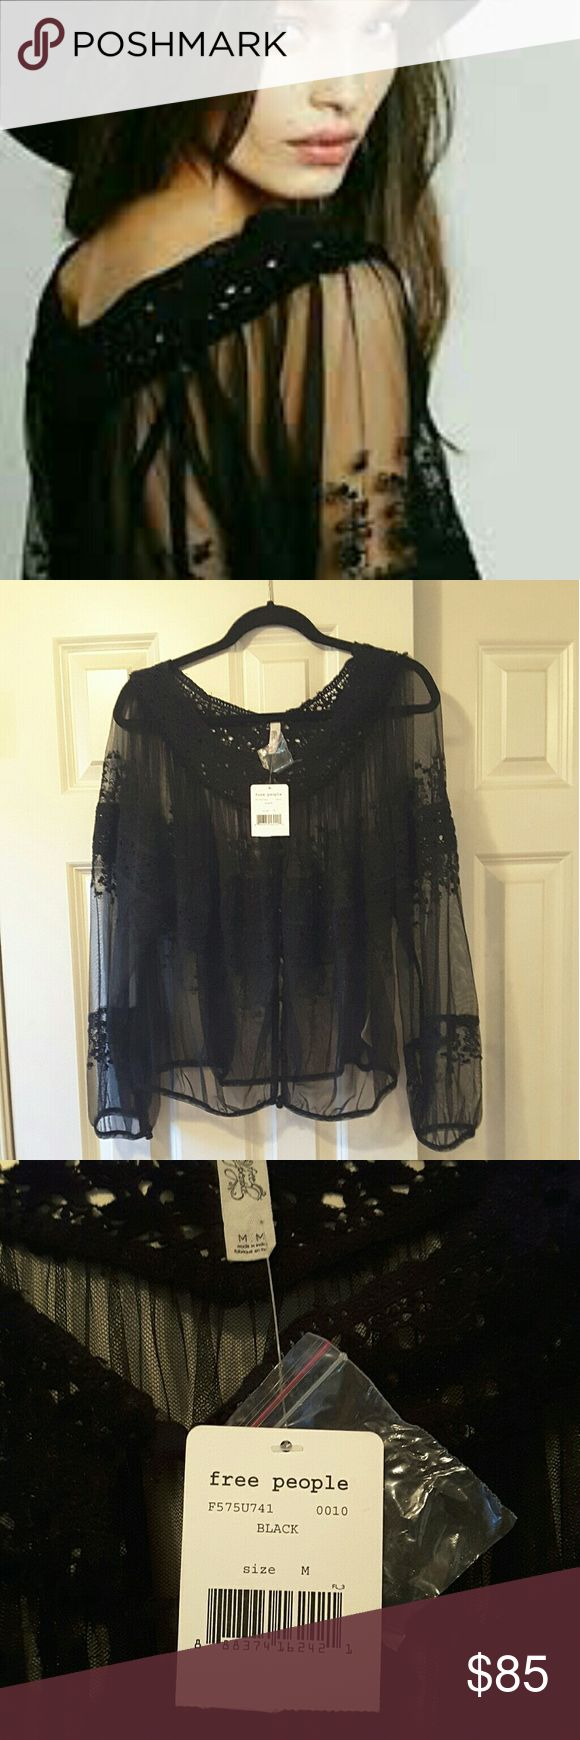 Free People Counting the Days Victorian Blouse NWT Beautiful mesh and lace blouse. Buttons down the front. Can be worn with buttons in back also. Free People Tops Blouses